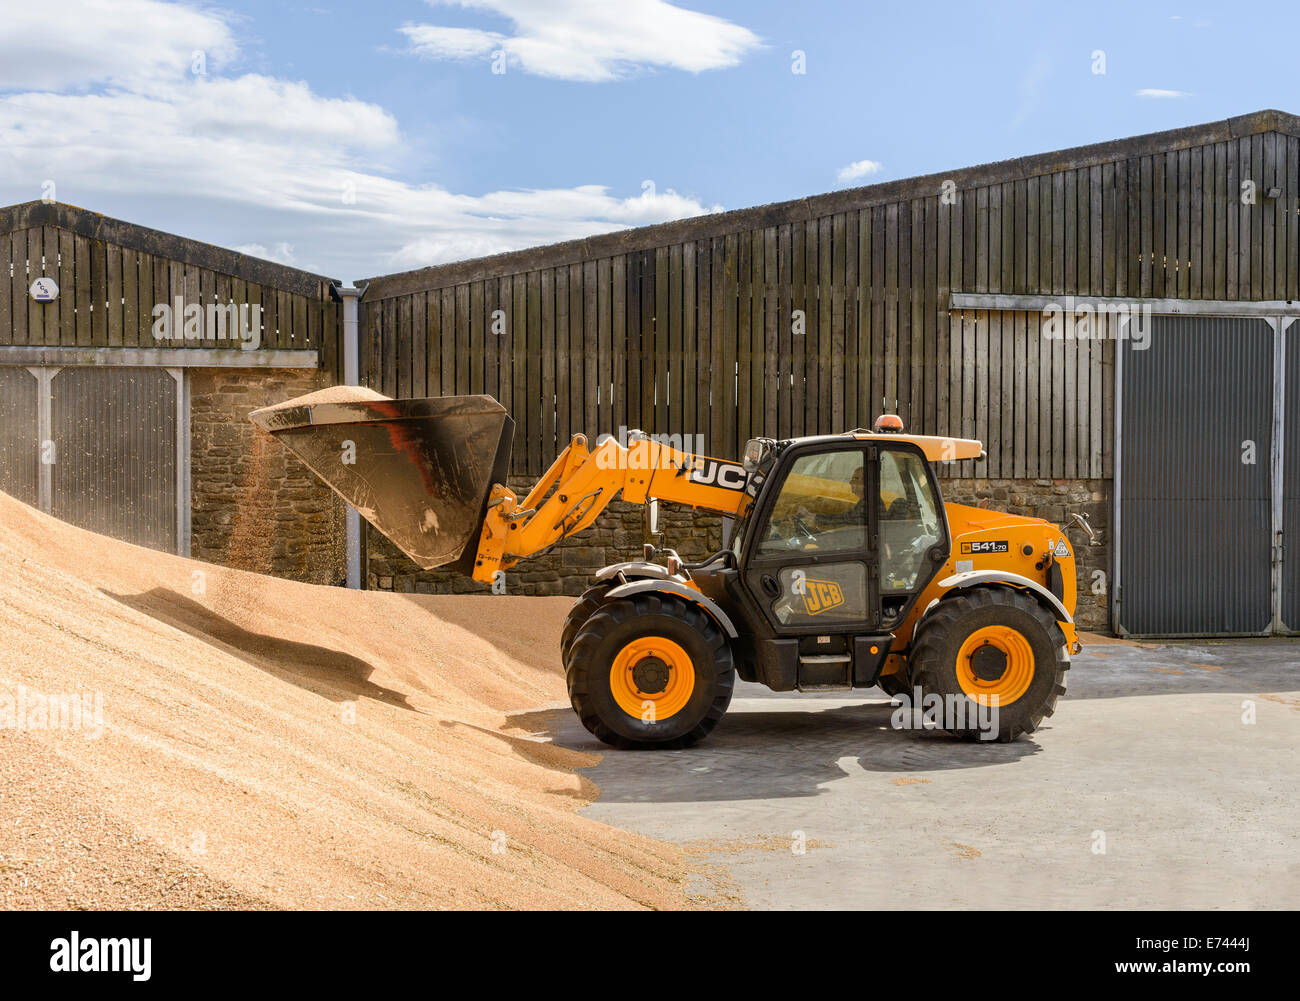 JCB moving grain at a bulk storage facility - Stock Image